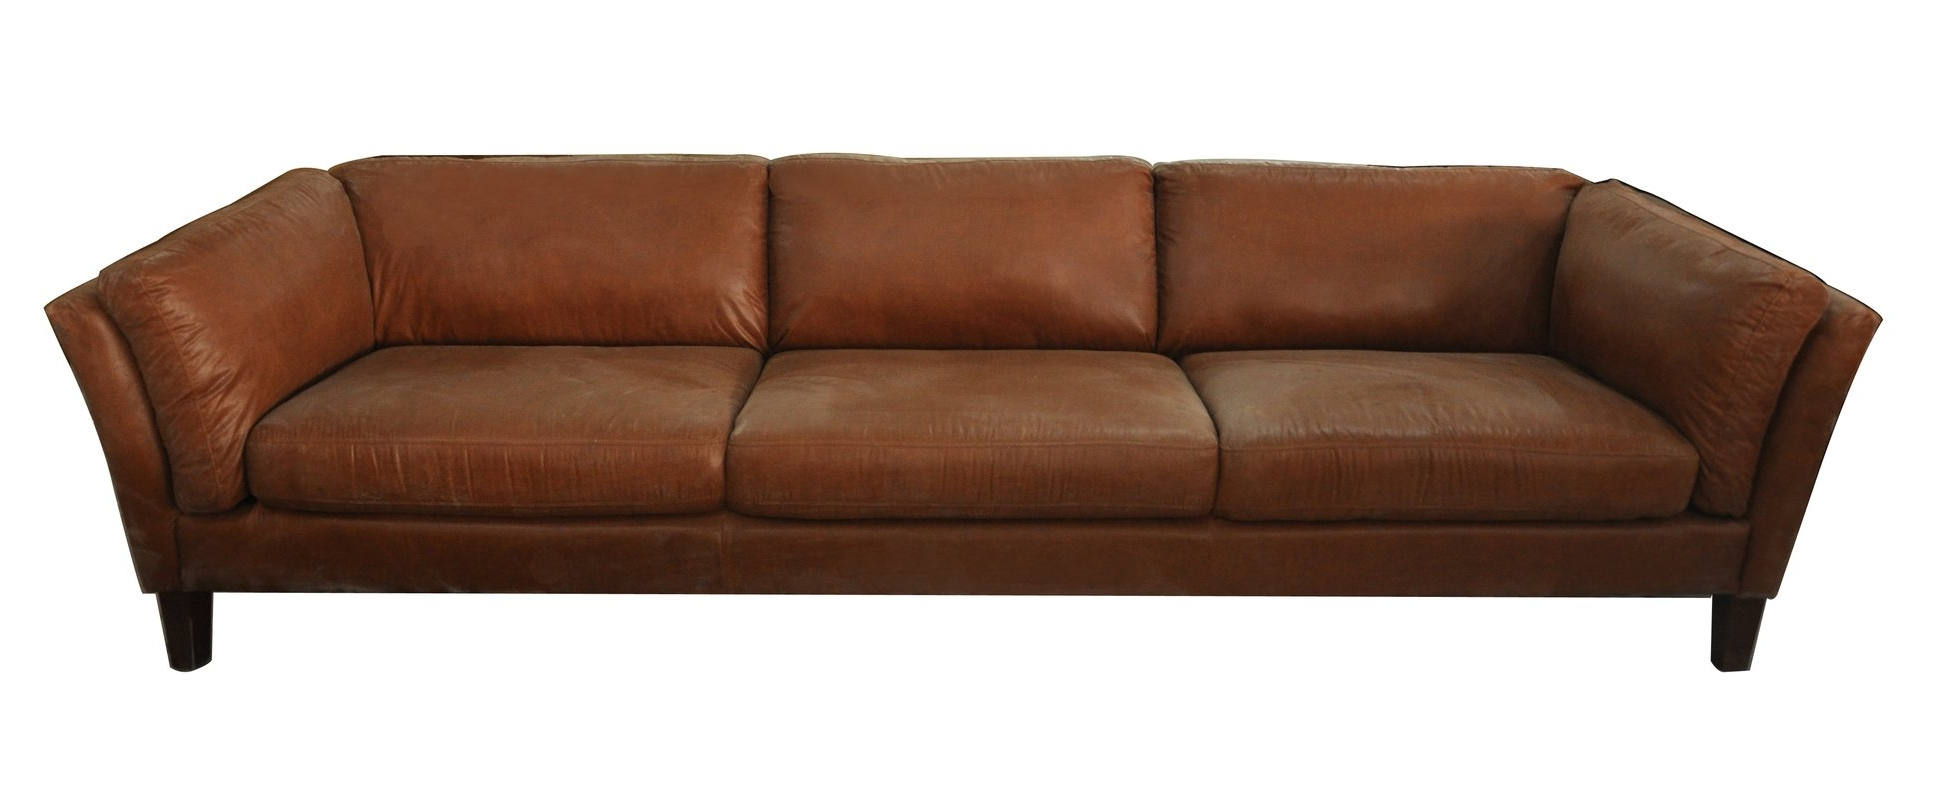 The Best 3 Seater Leather Sofas